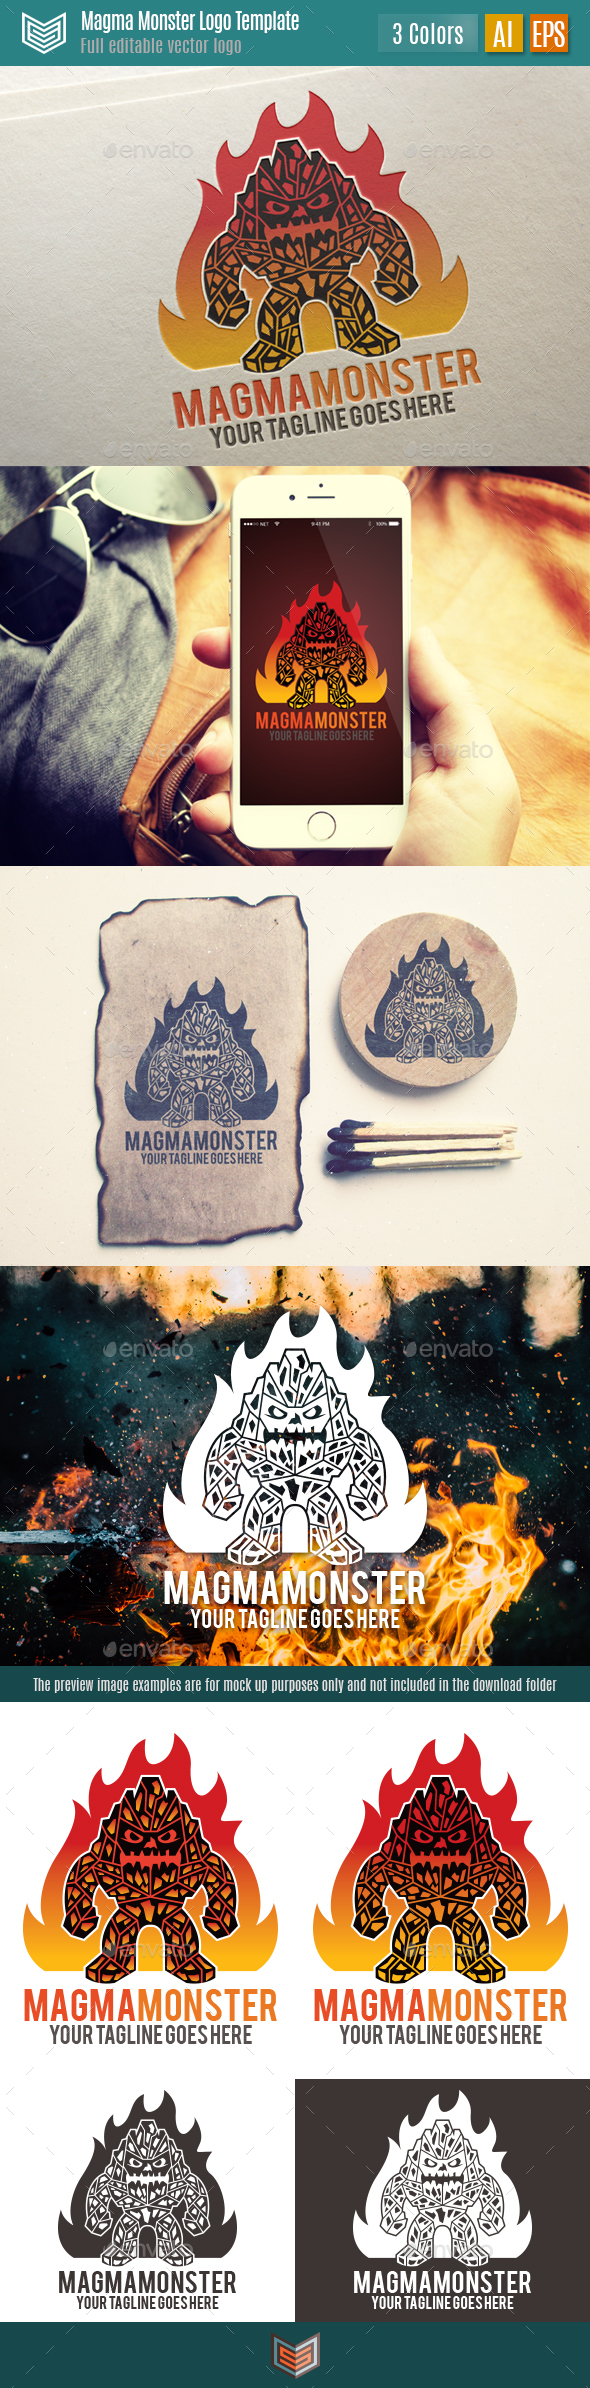 Magma Monster Logo. - Logo Templates